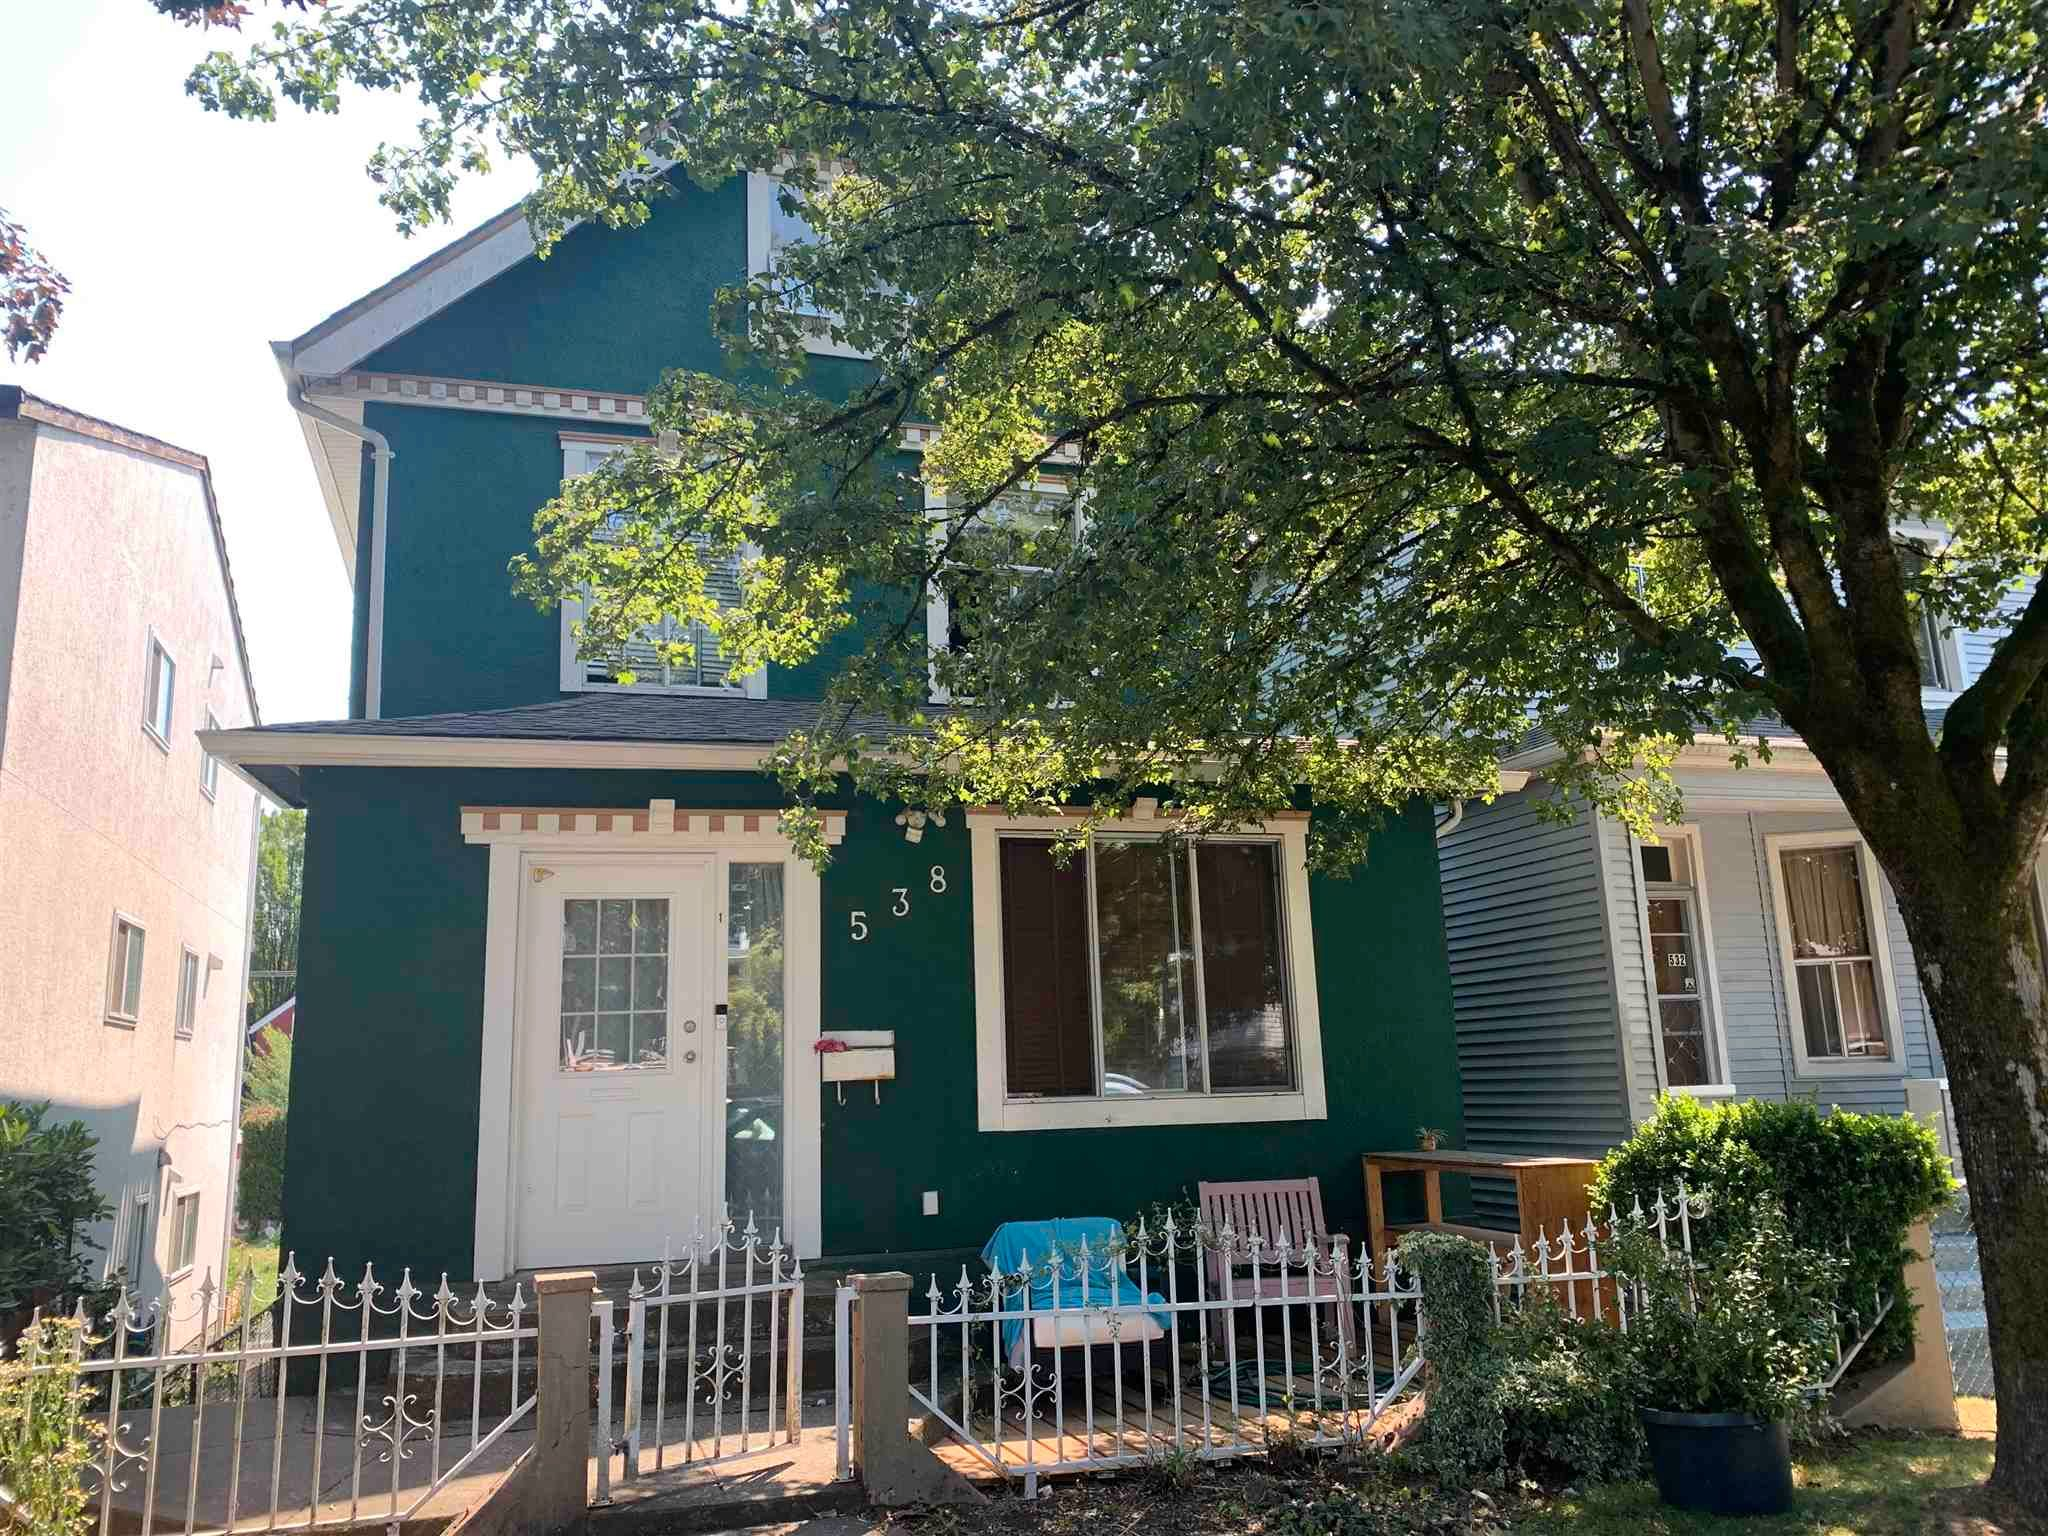 Main Photo: 538 UNION Street in Vancouver: Strathcona Fourplex for sale (Vancouver East)  : MLS®# R2598474